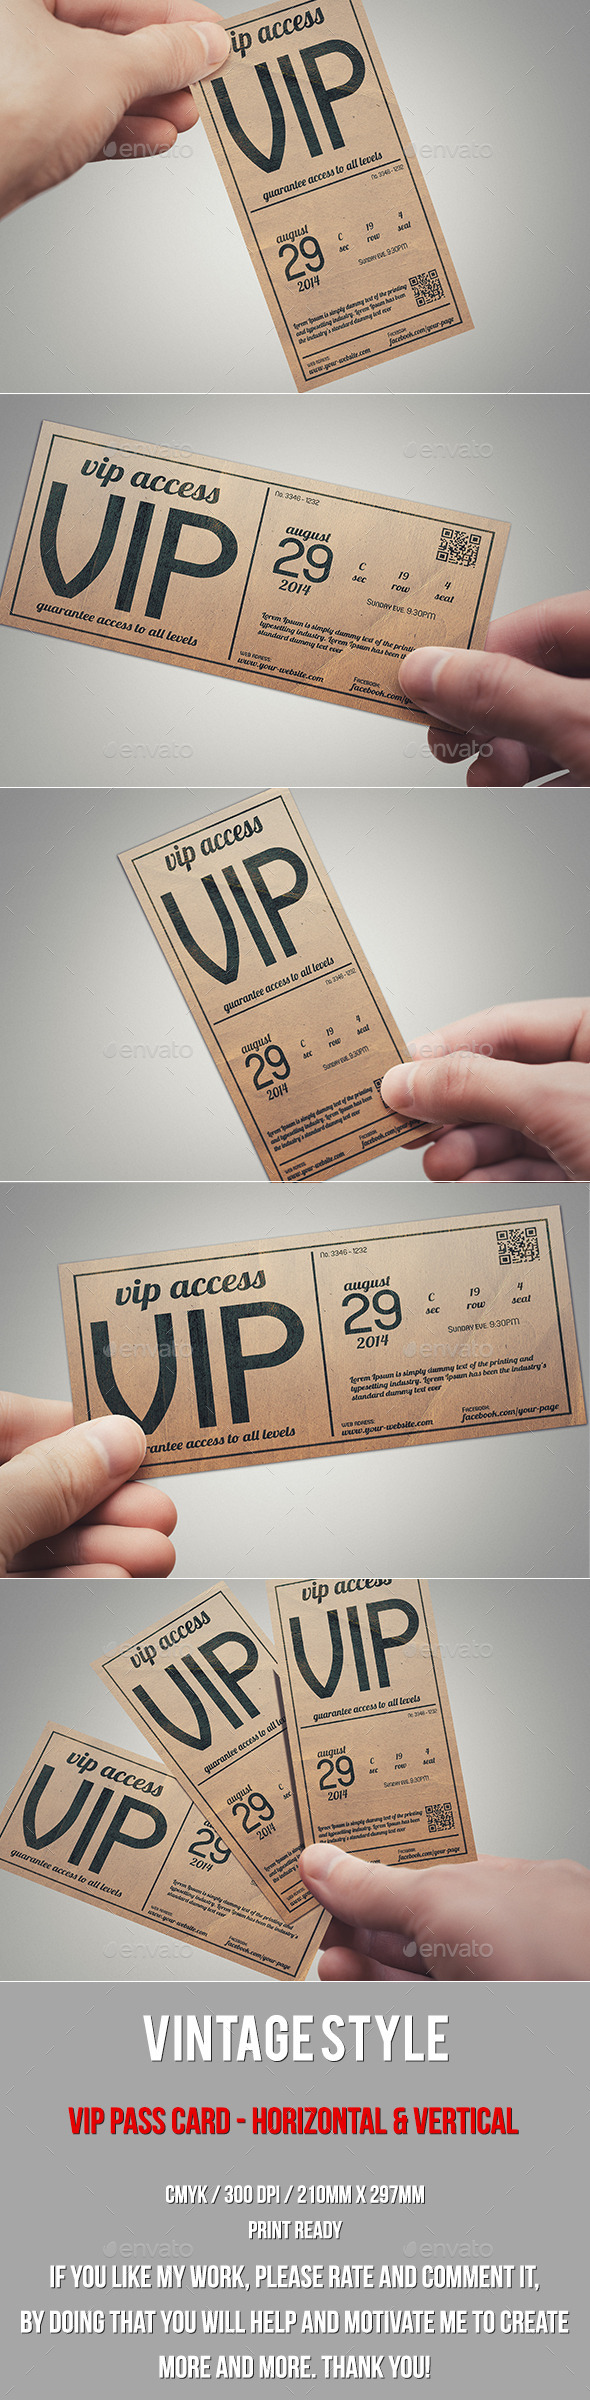 GraphicRiver Vintage Style Vip Pass Card 10206082